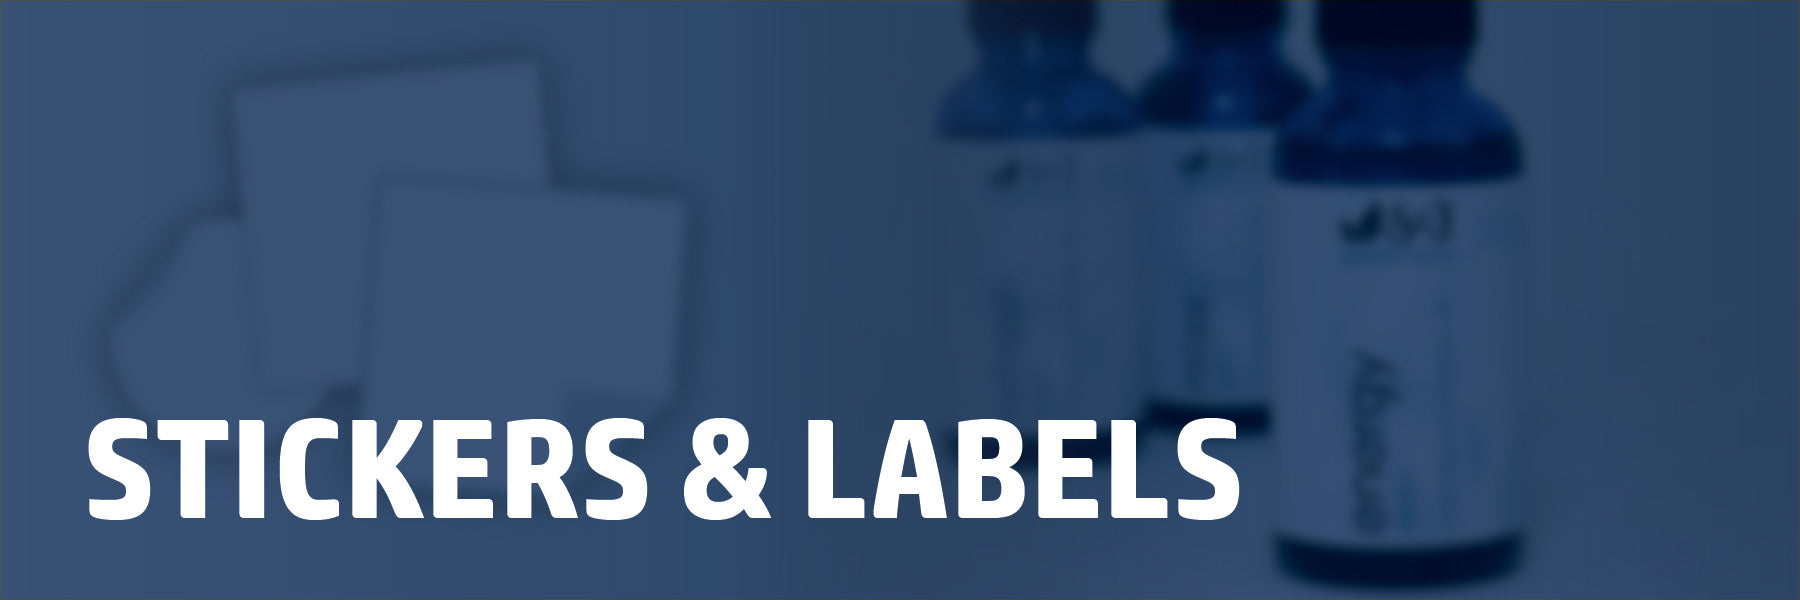 custom die-cut stickers and product labels